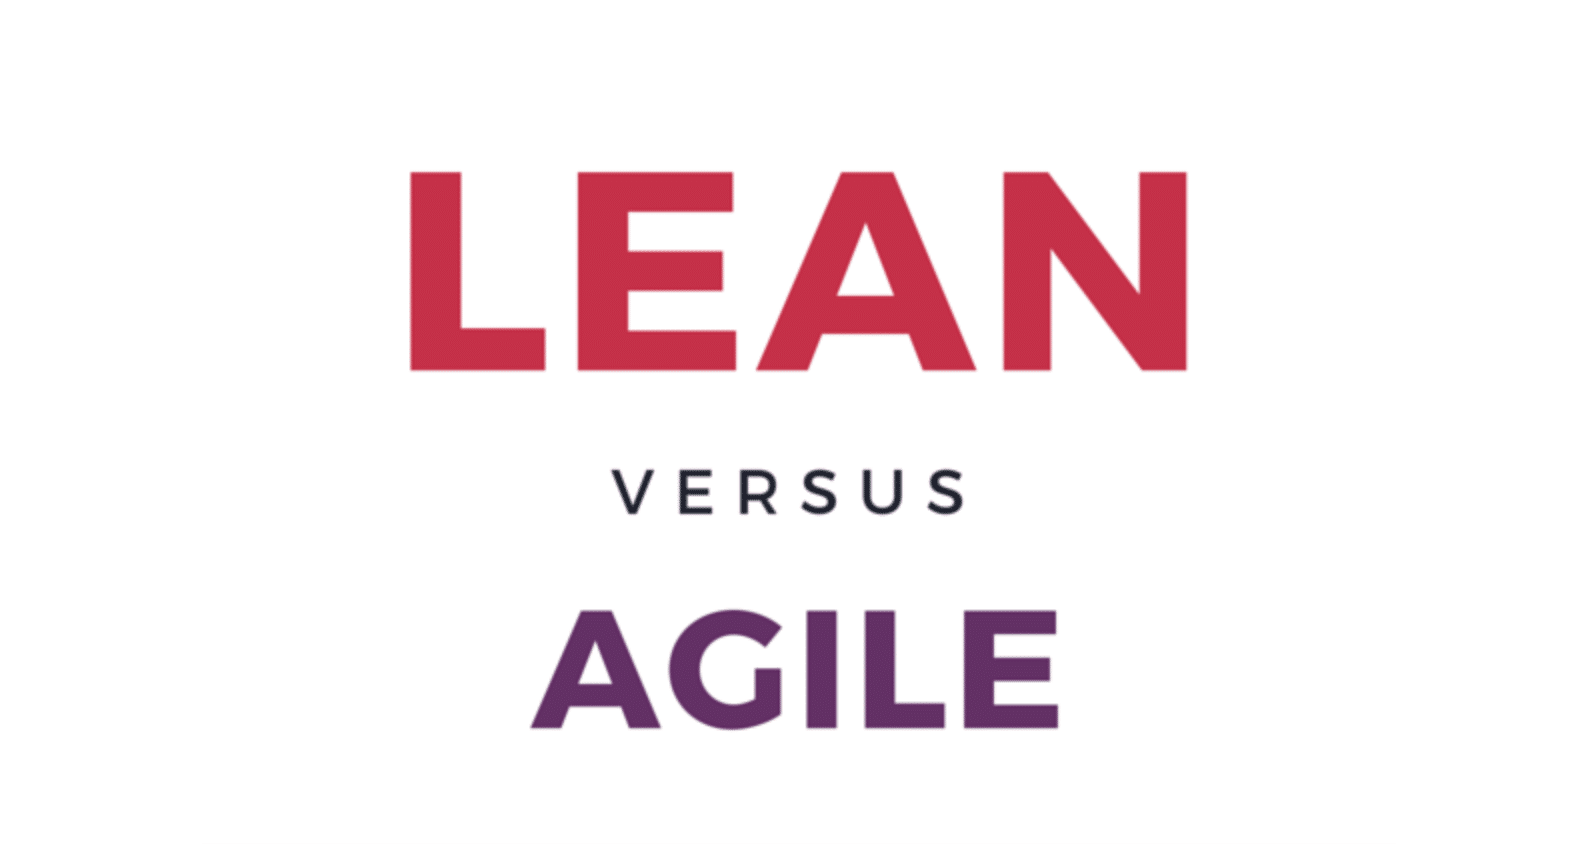 Lean and Agile @rzarref Rafael Ferraz